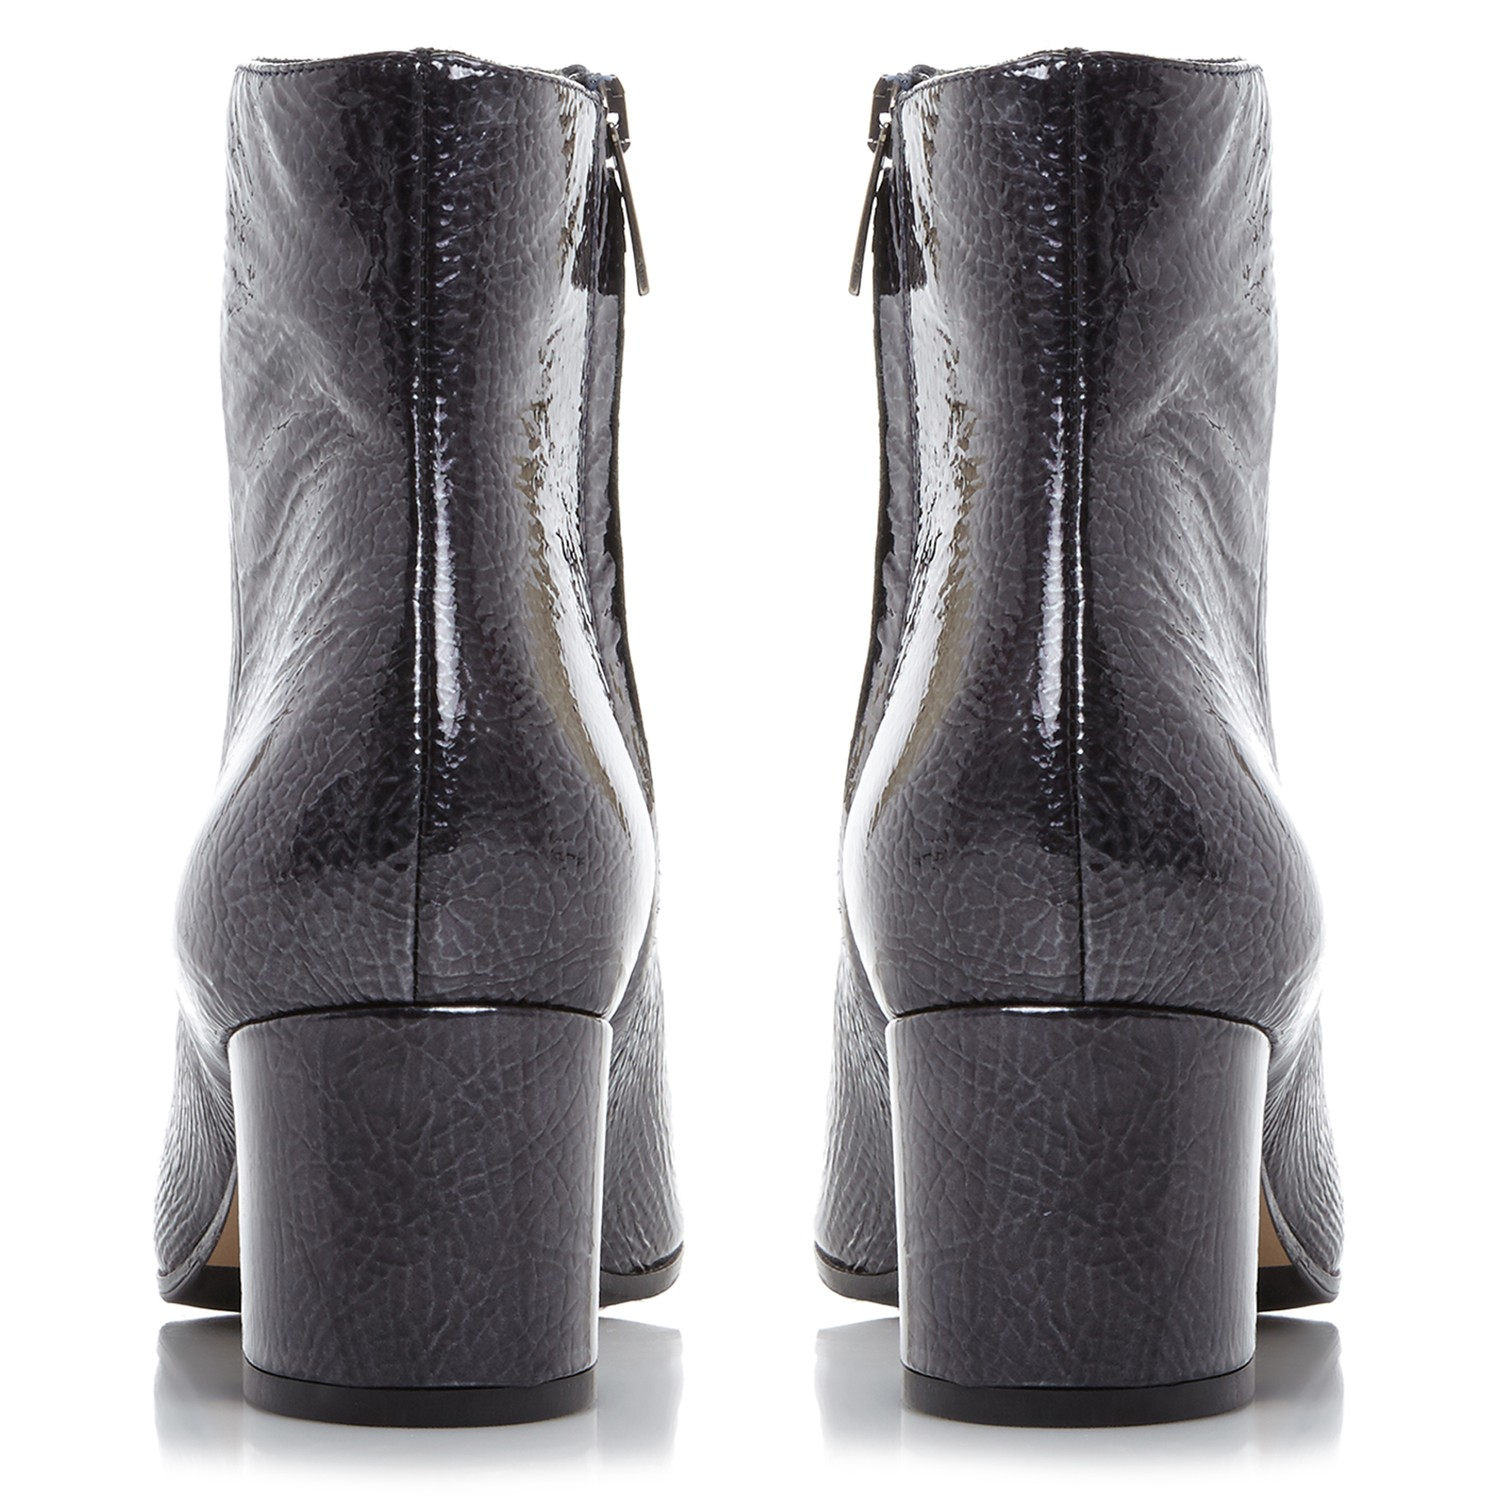 Dune Black Leather Orsen Block Heel Ankle Boots in Navy Patent (Blue)